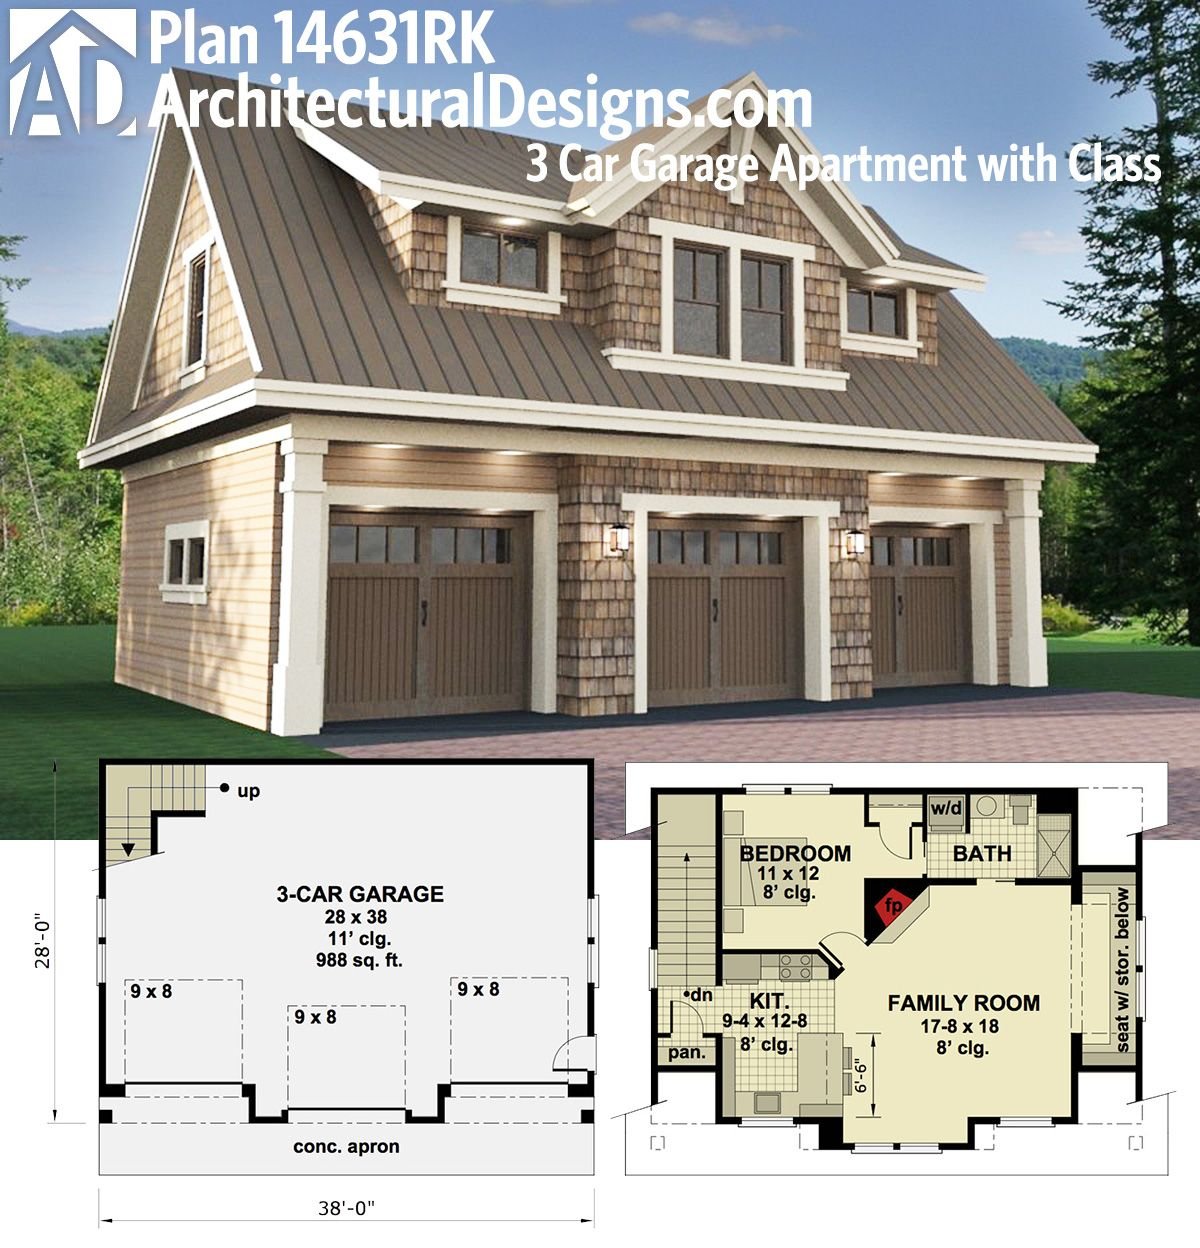 Plan 14631rk 3 car garage apartment with class for 4 car garage home plans